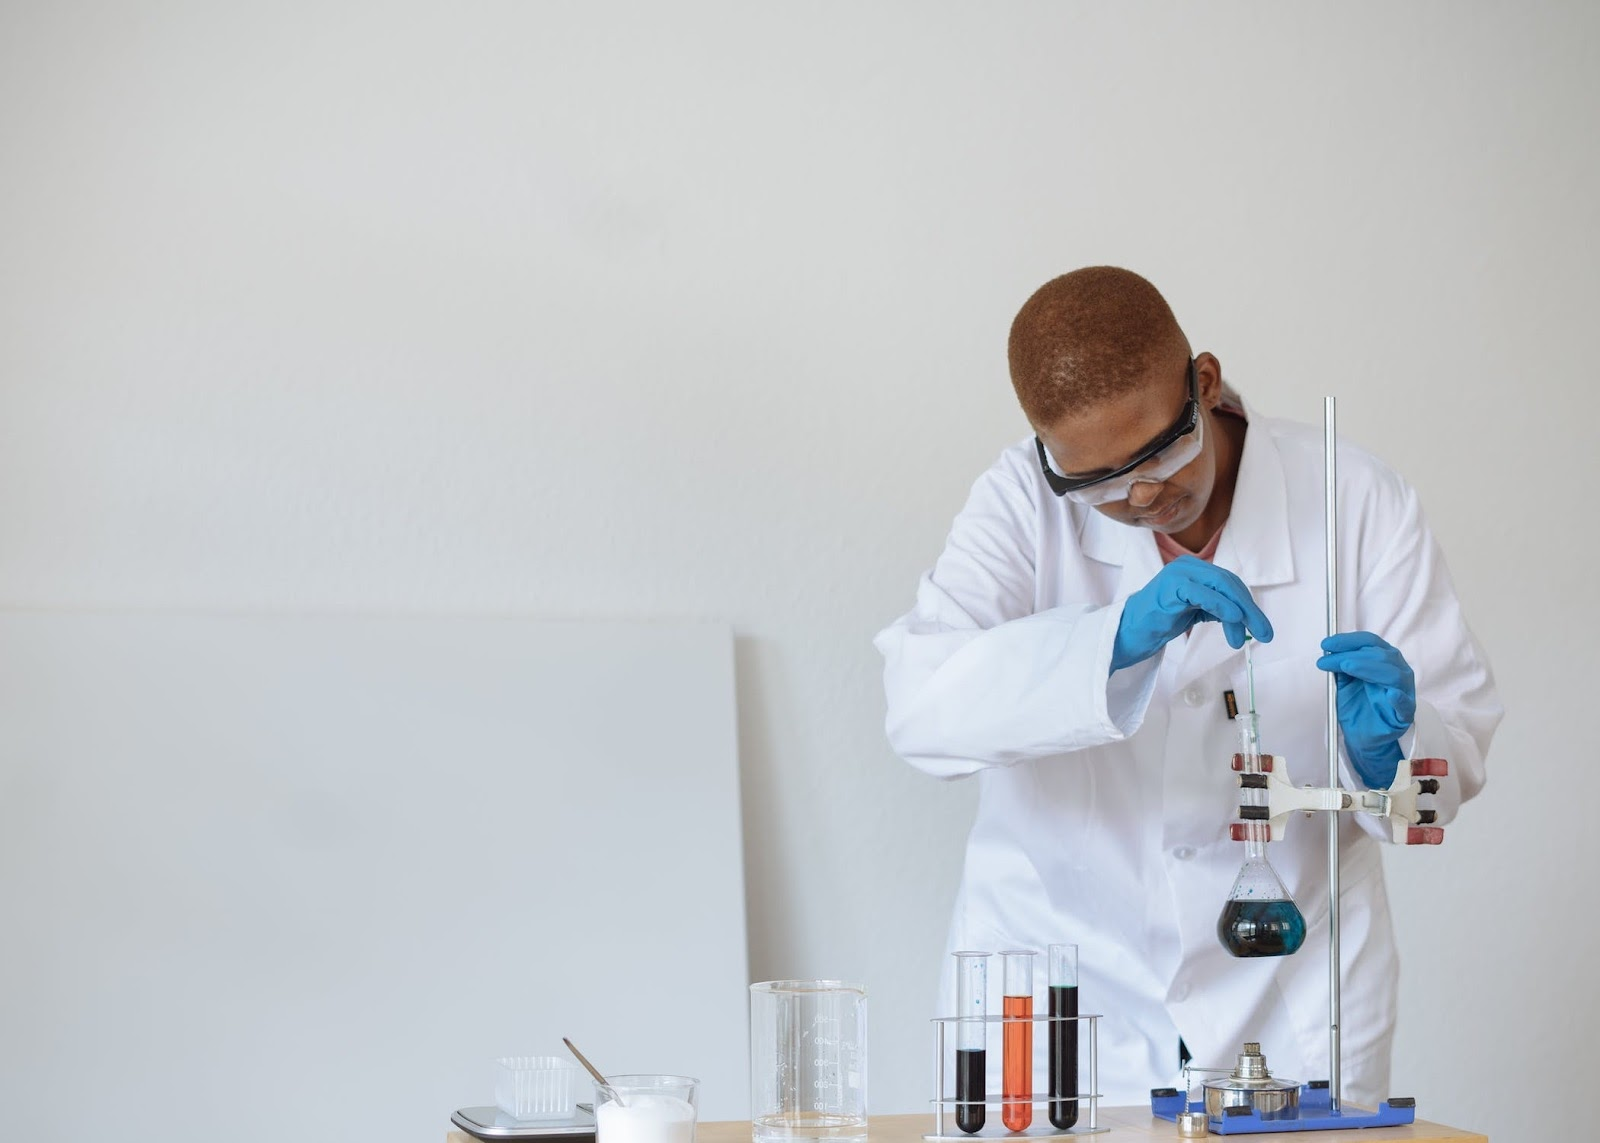 Photo of student in lab coat working in chemistry lab